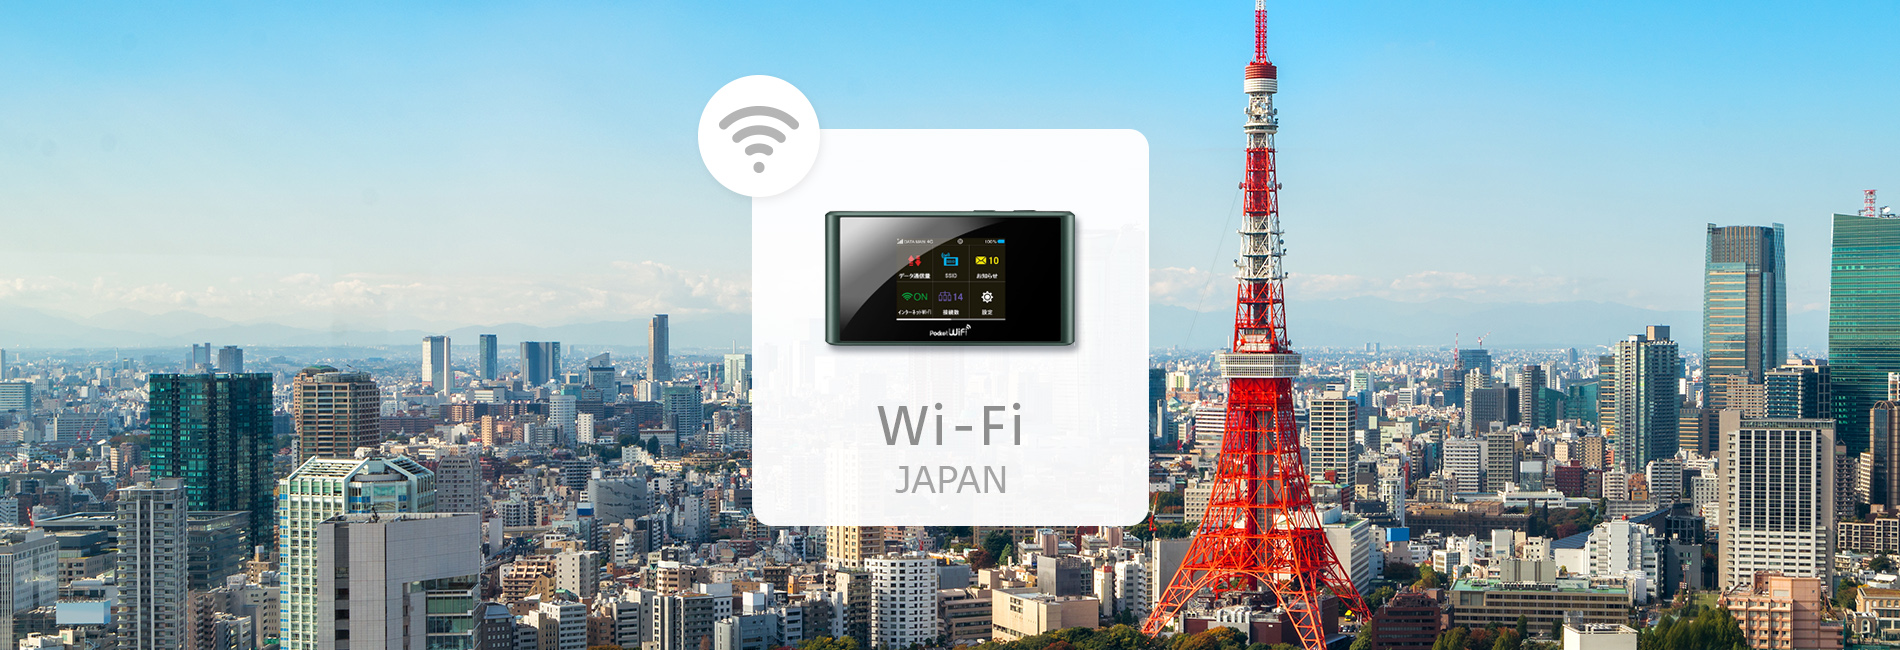 Japan Unlimited 4G Portable Wi-Fi Rental (Pick-Up at Taiwan Airports or Delivery within Taiwan)